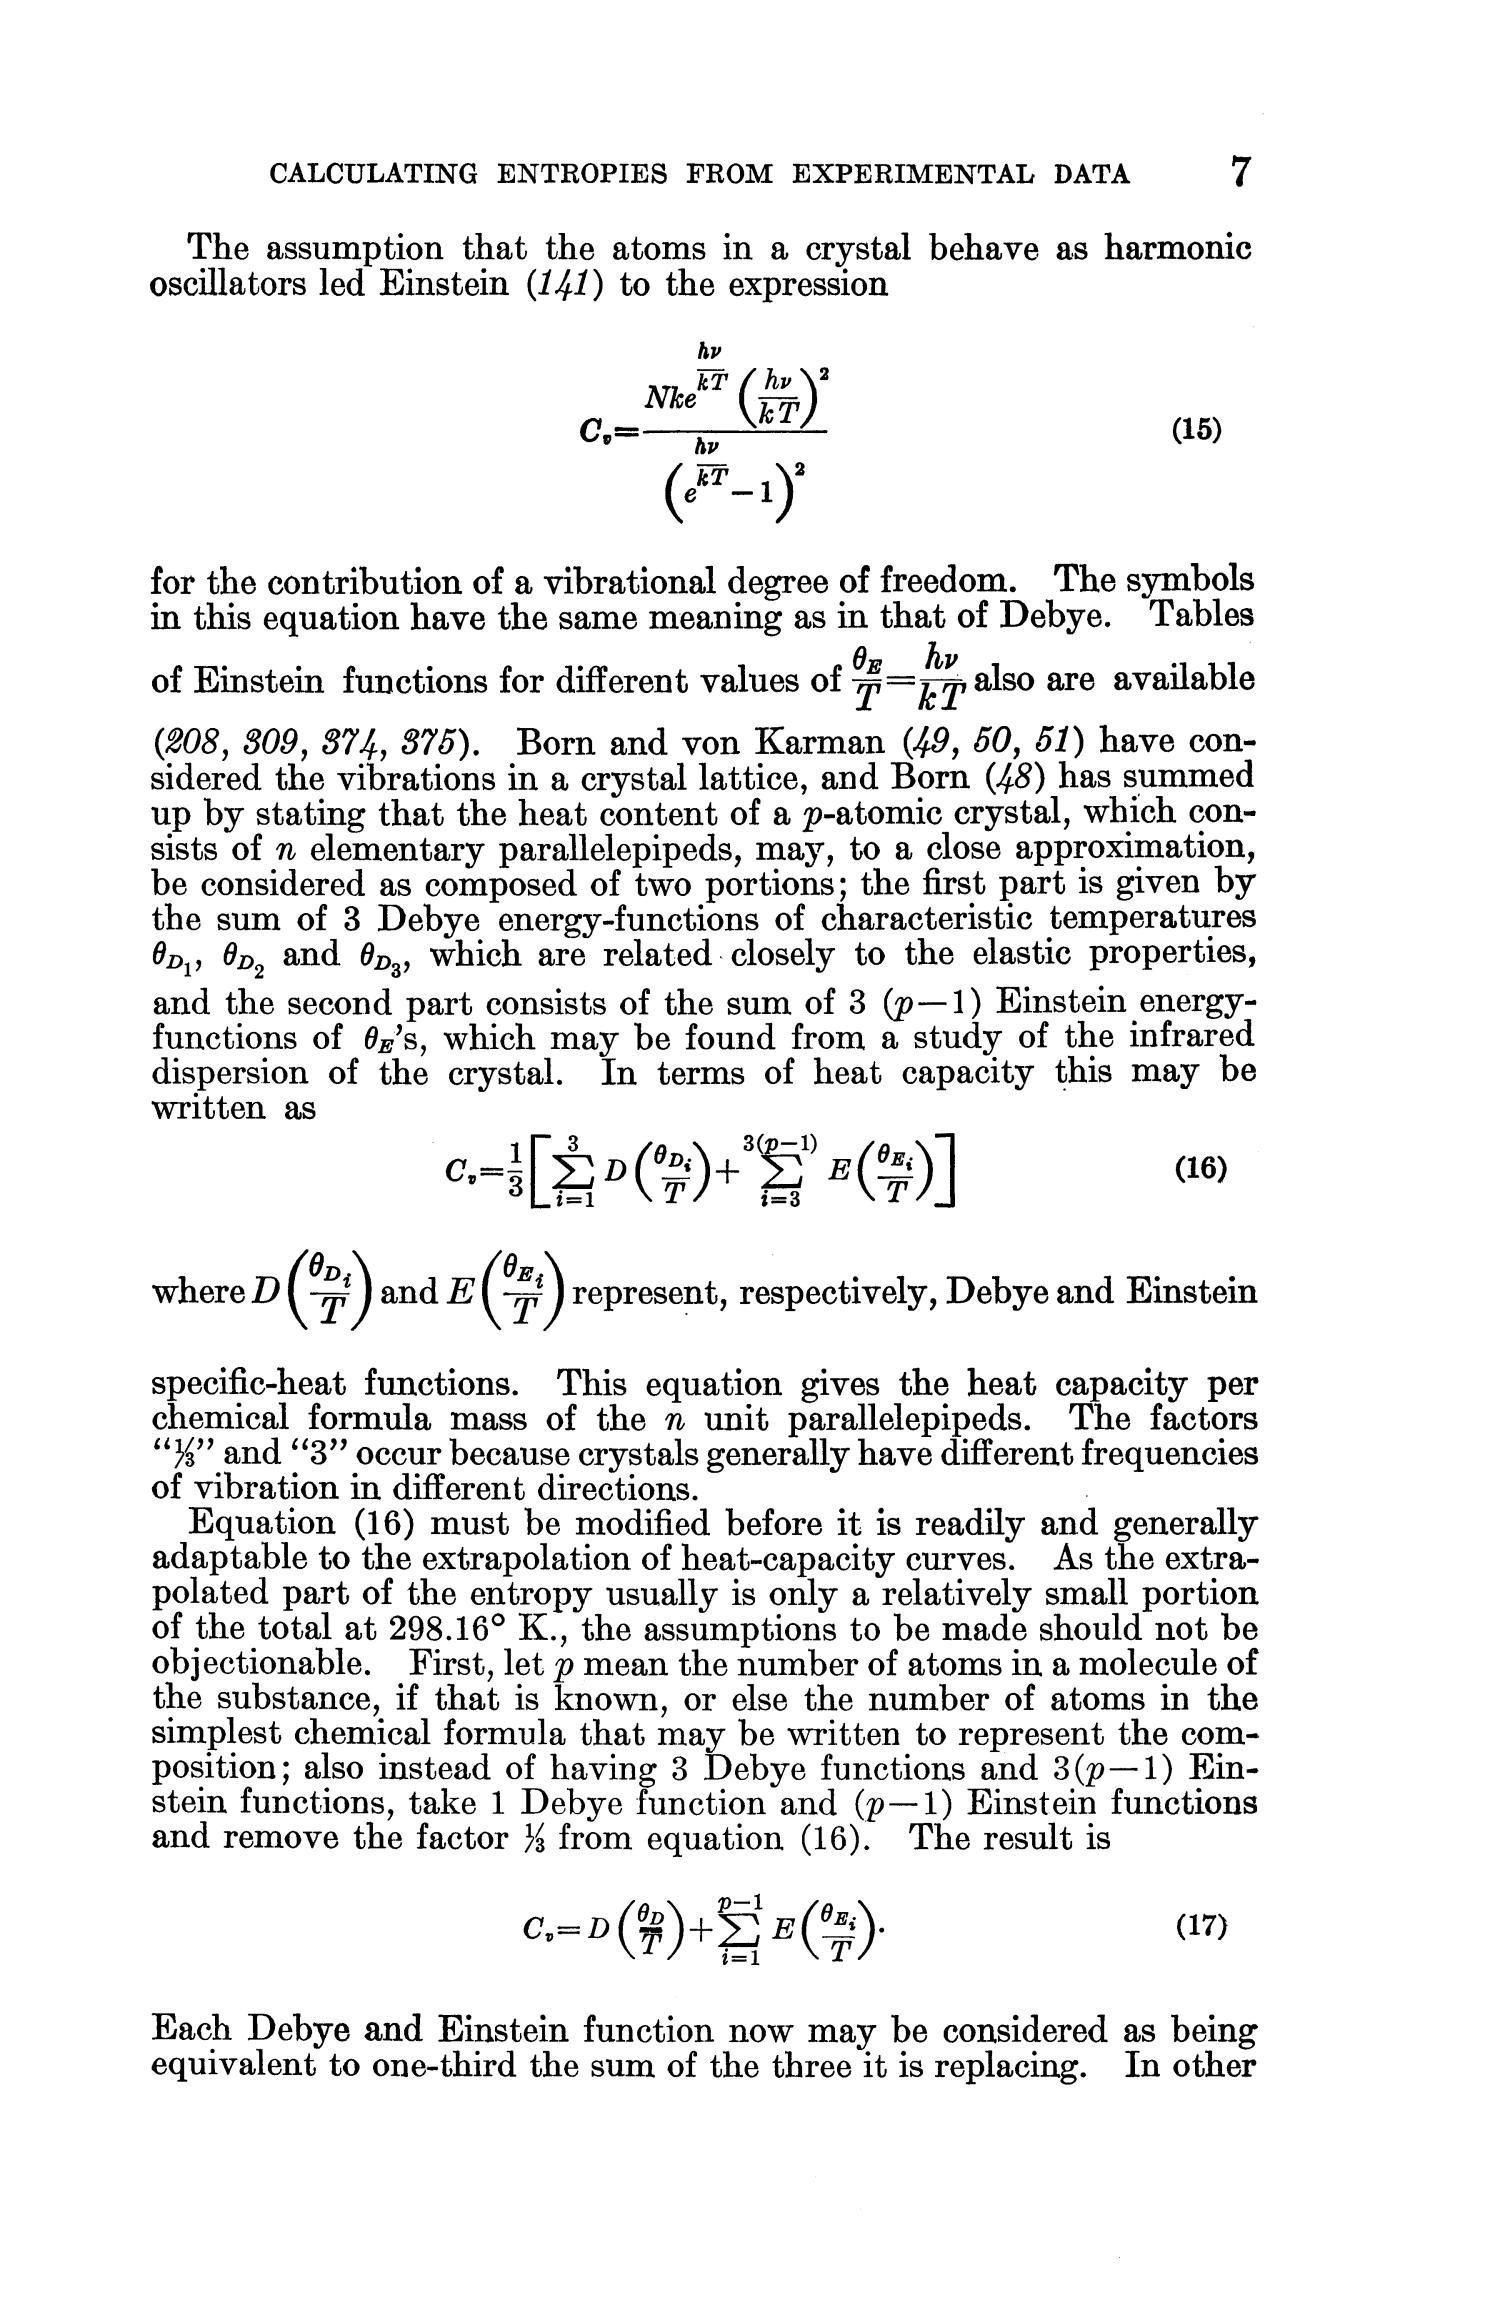 Contributions to the Data on Theoretical Metallurgy: [Part] 11. Entropies of Inorganic Substances: Revision (1948) of Data and Methods of Calculation                                                                                                      7